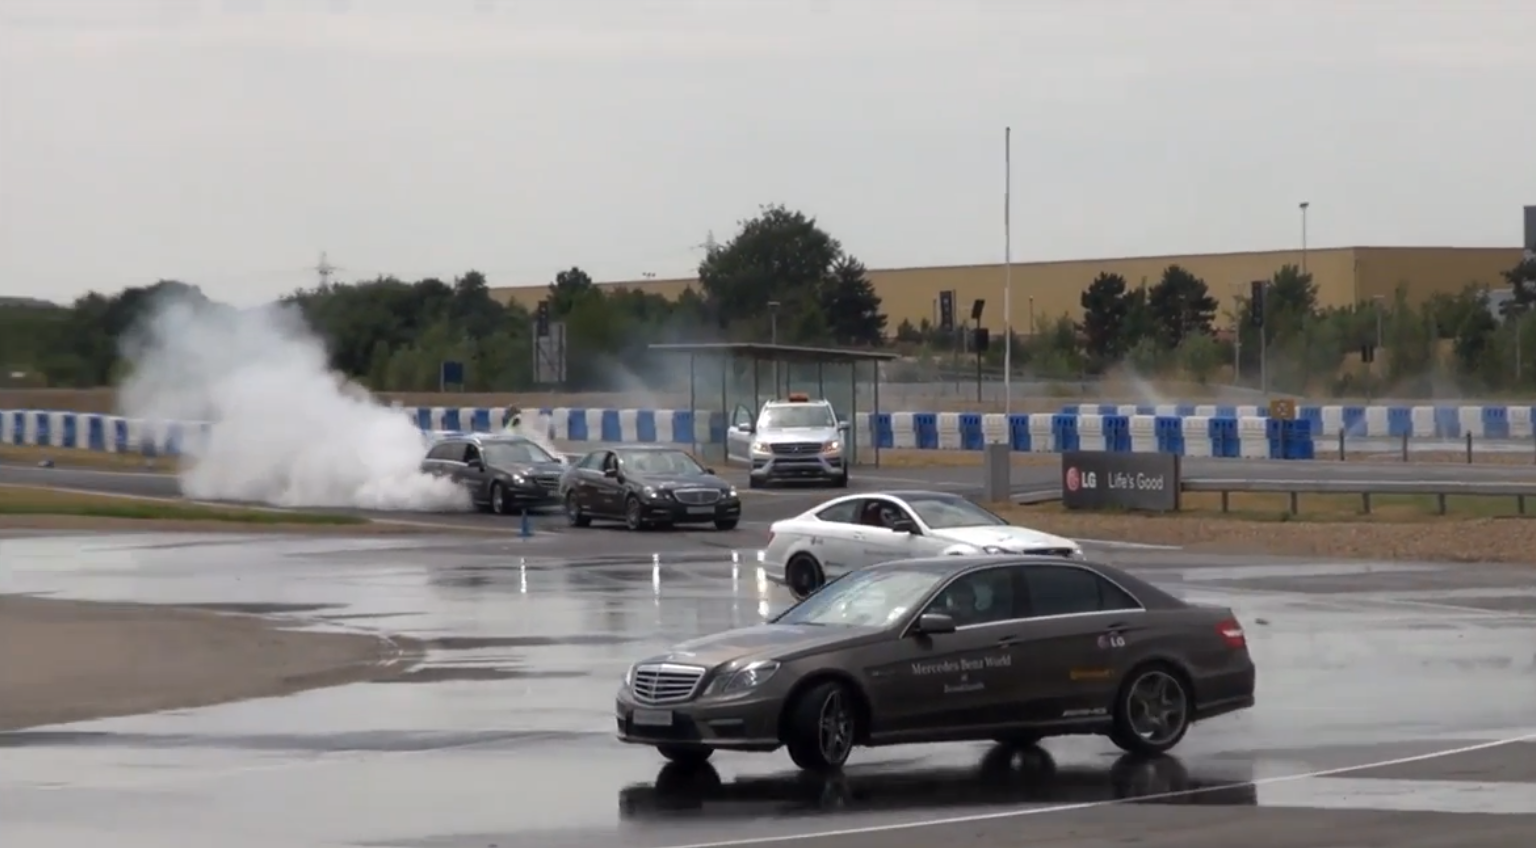 amgs doing drifting and burnouts at mercedes benz world